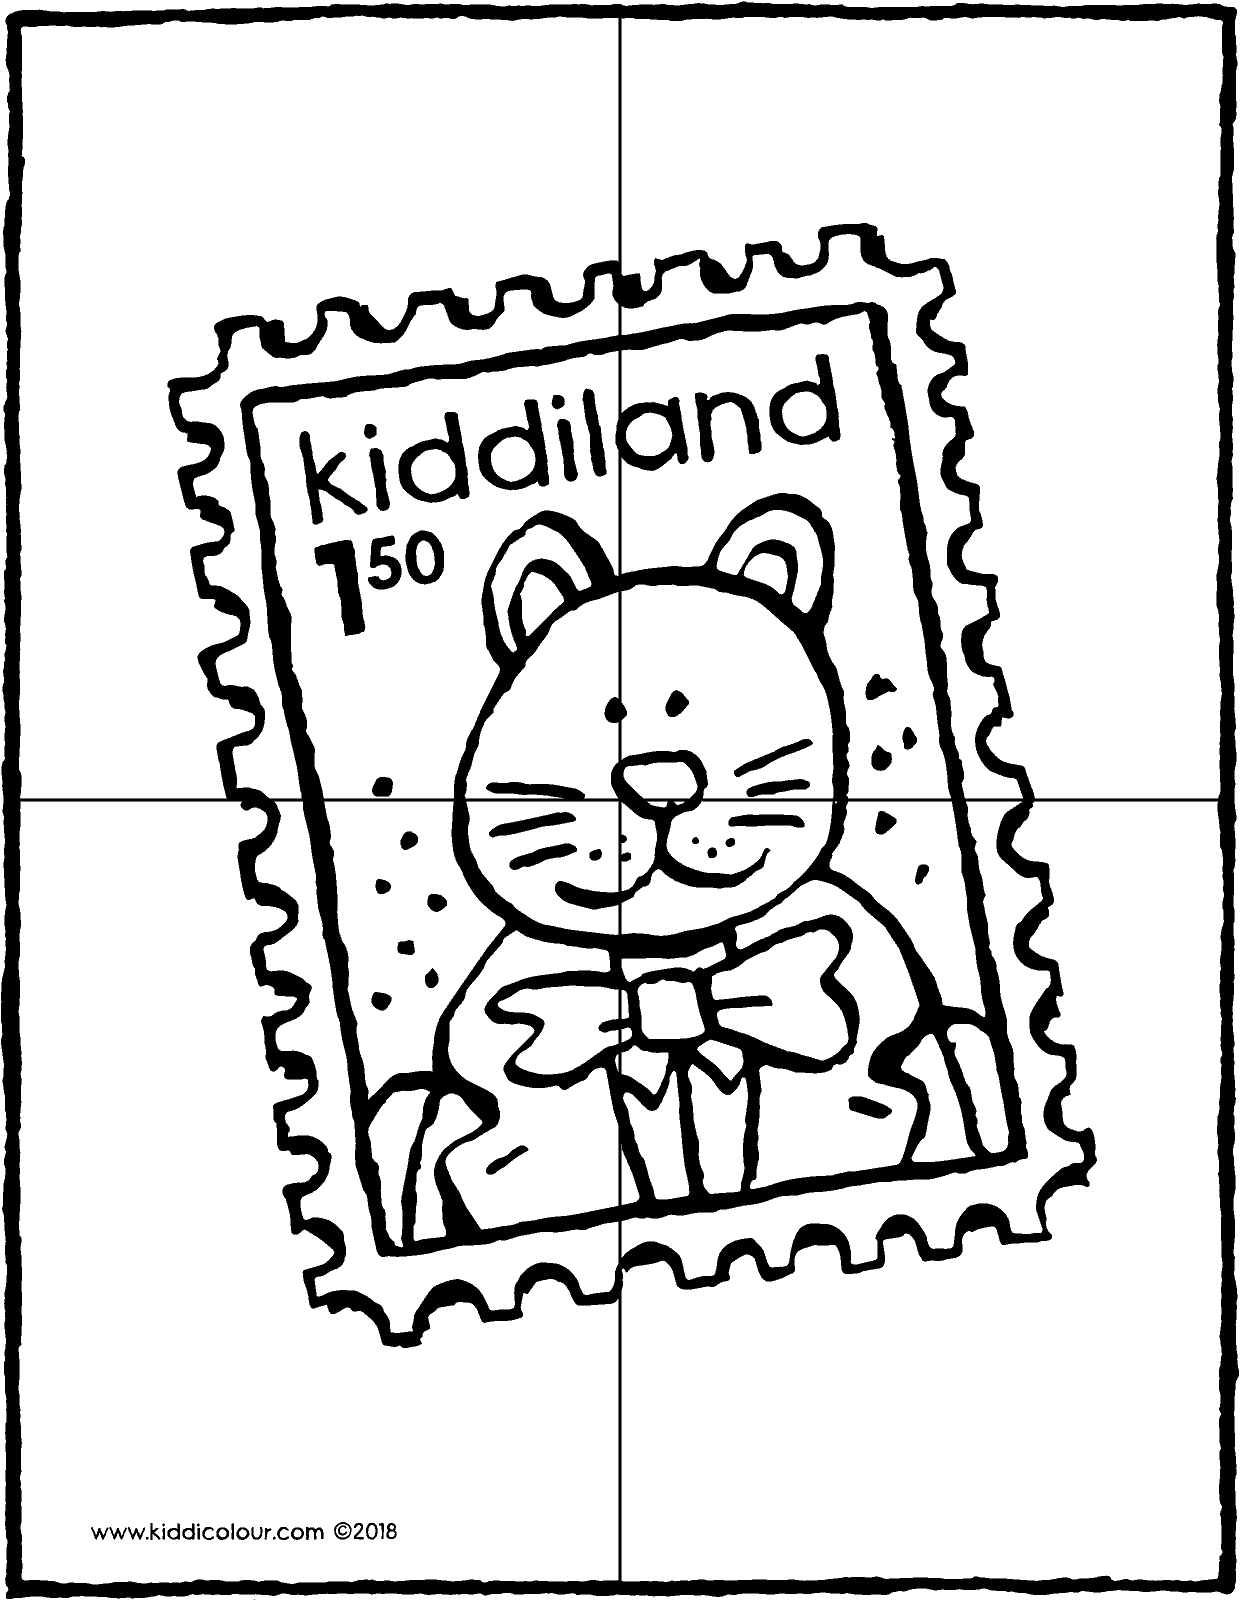 stamp puzzle 4 pieces colouring page drawing picture 01V